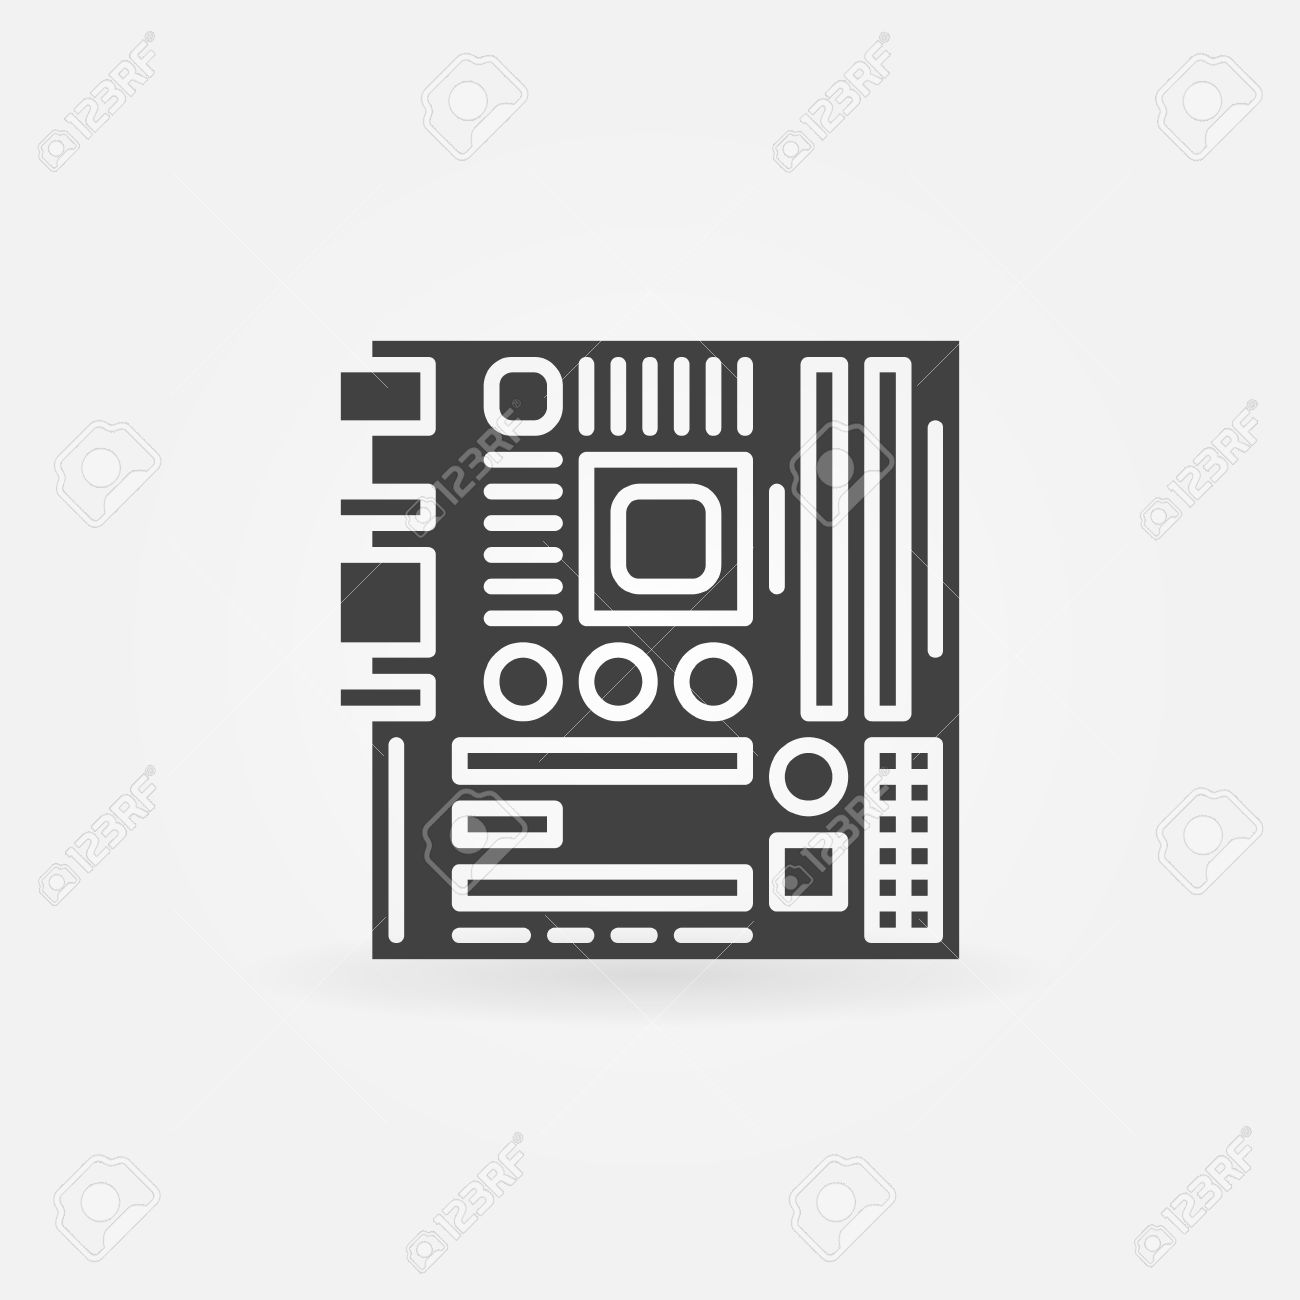 Led Diagram Symbol - Roslonek.net